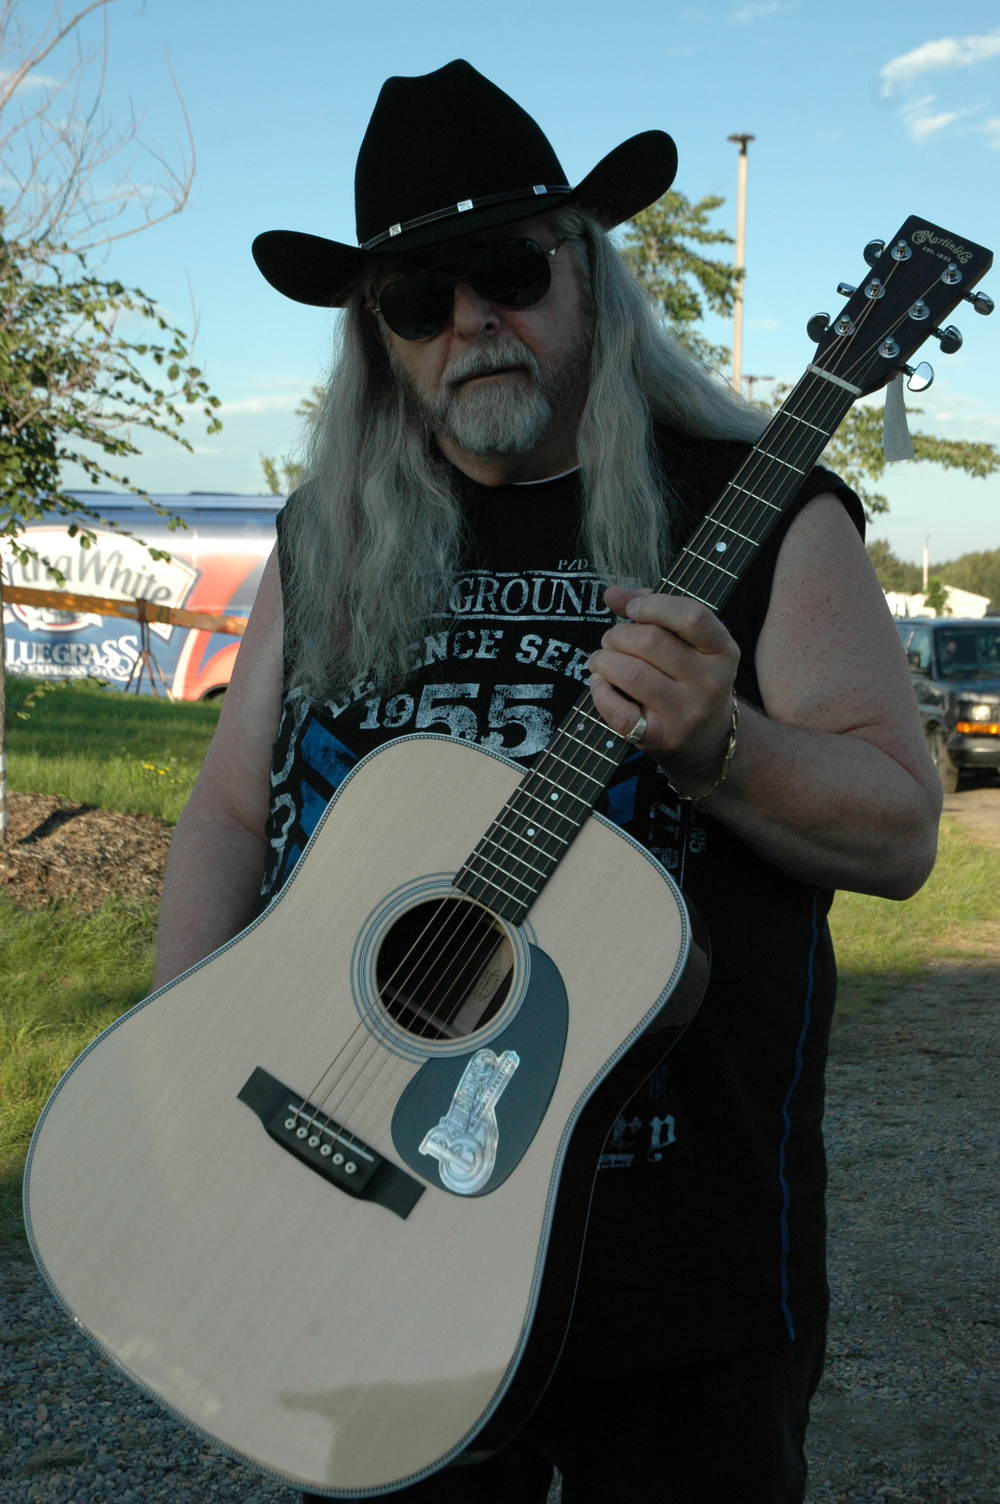 2012 - Blueberry President Norm Sliter with the 2012 Custom Martin Guitar Raffle Prize